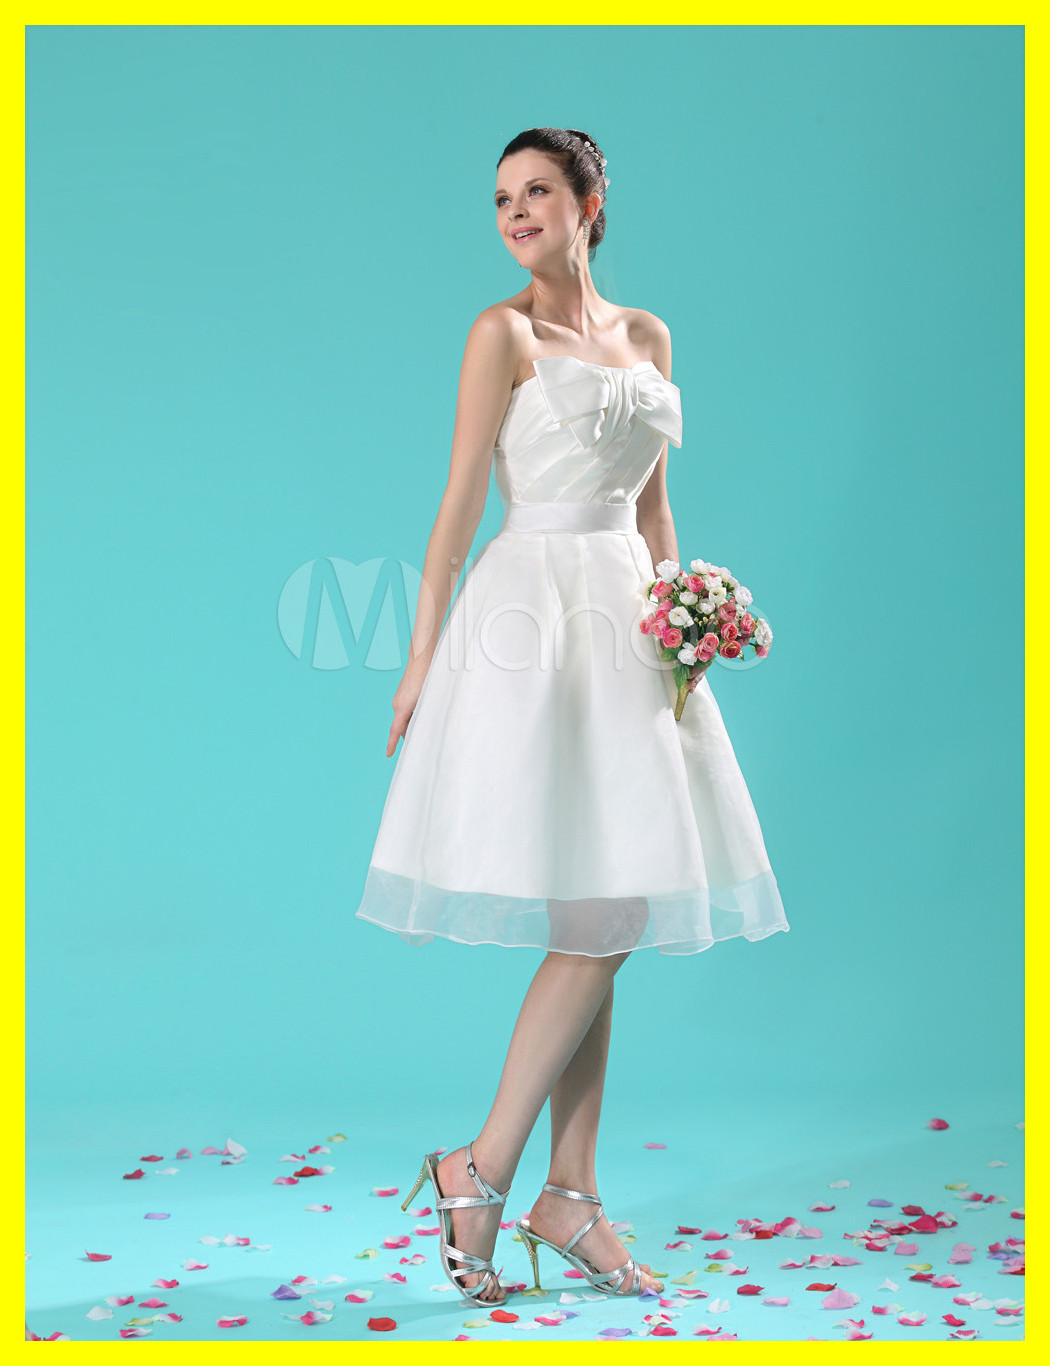 Comfortable Monsoon Maternity Wedding Dresses Images - Wedding Dress ...